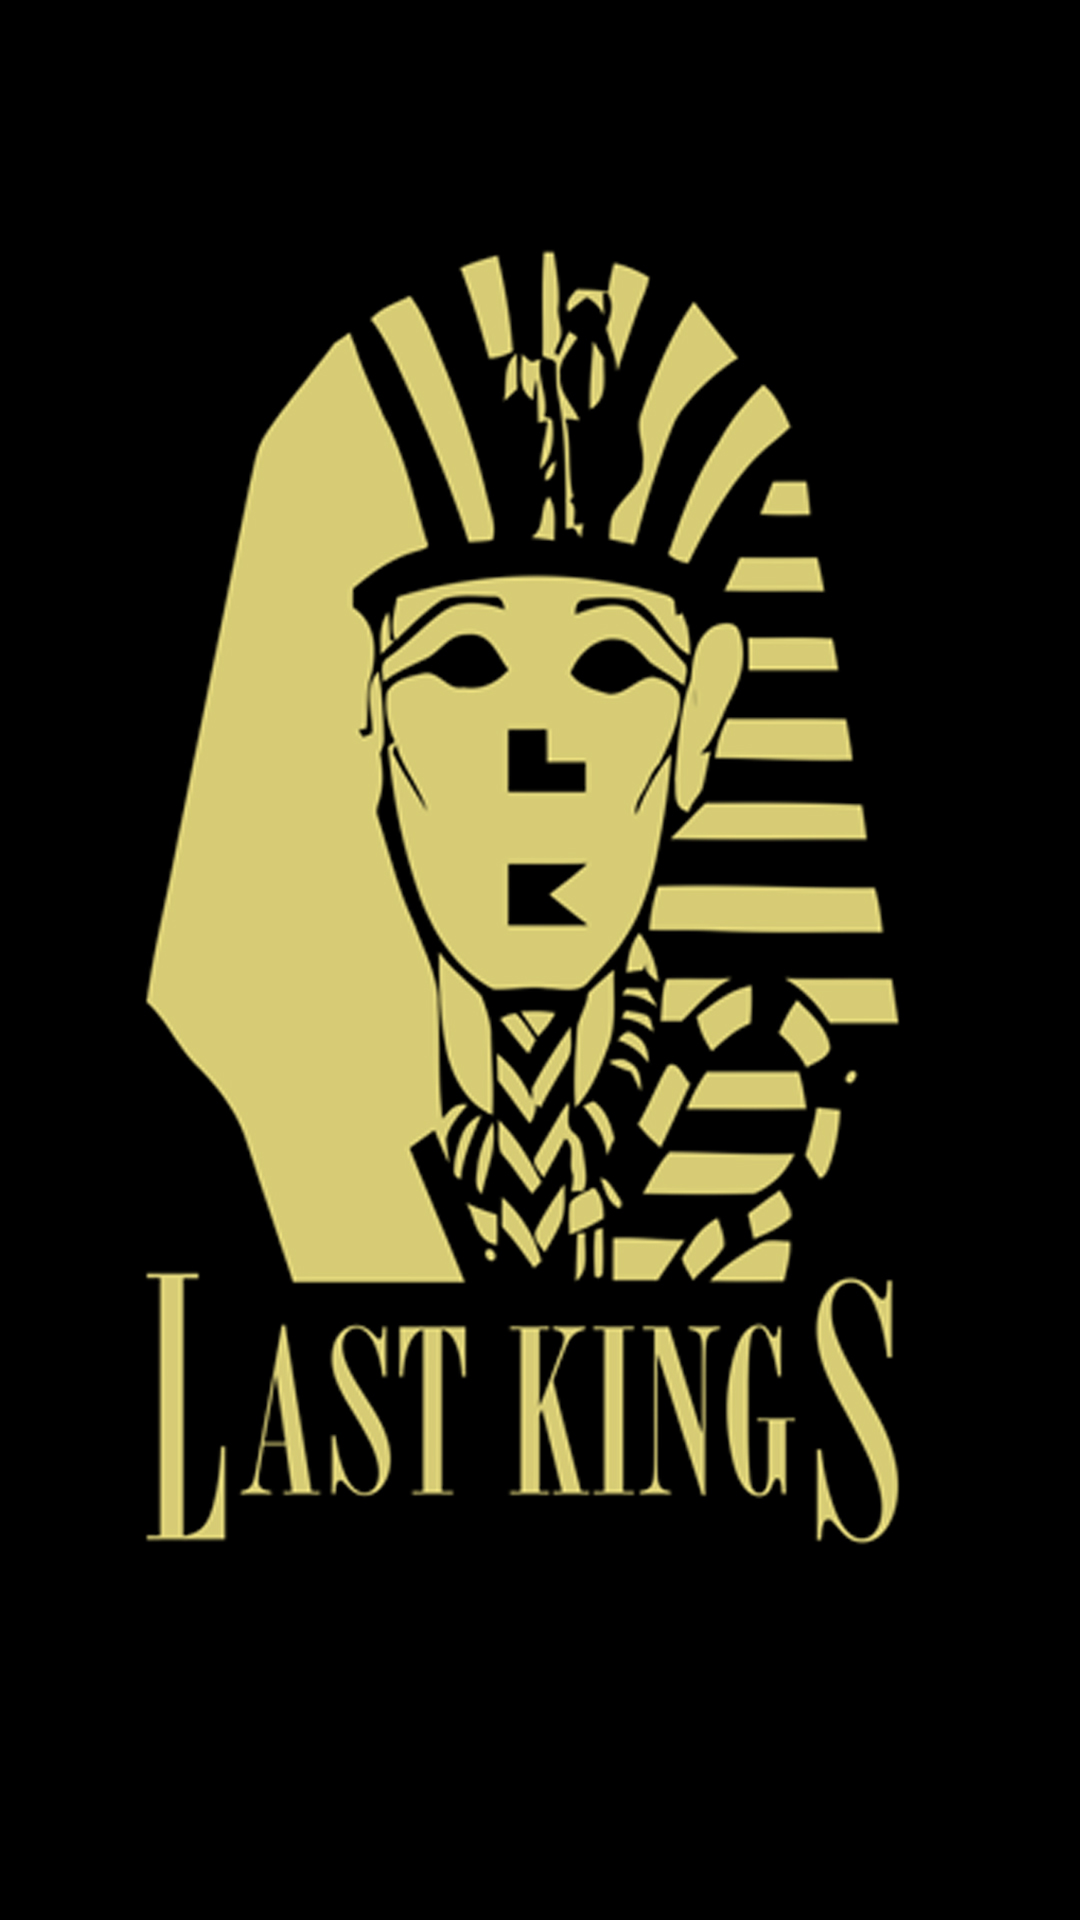 Last kings wallpaper iphone 7 plus with dark background - Awesome wallpapers for iphone 7 plus ...